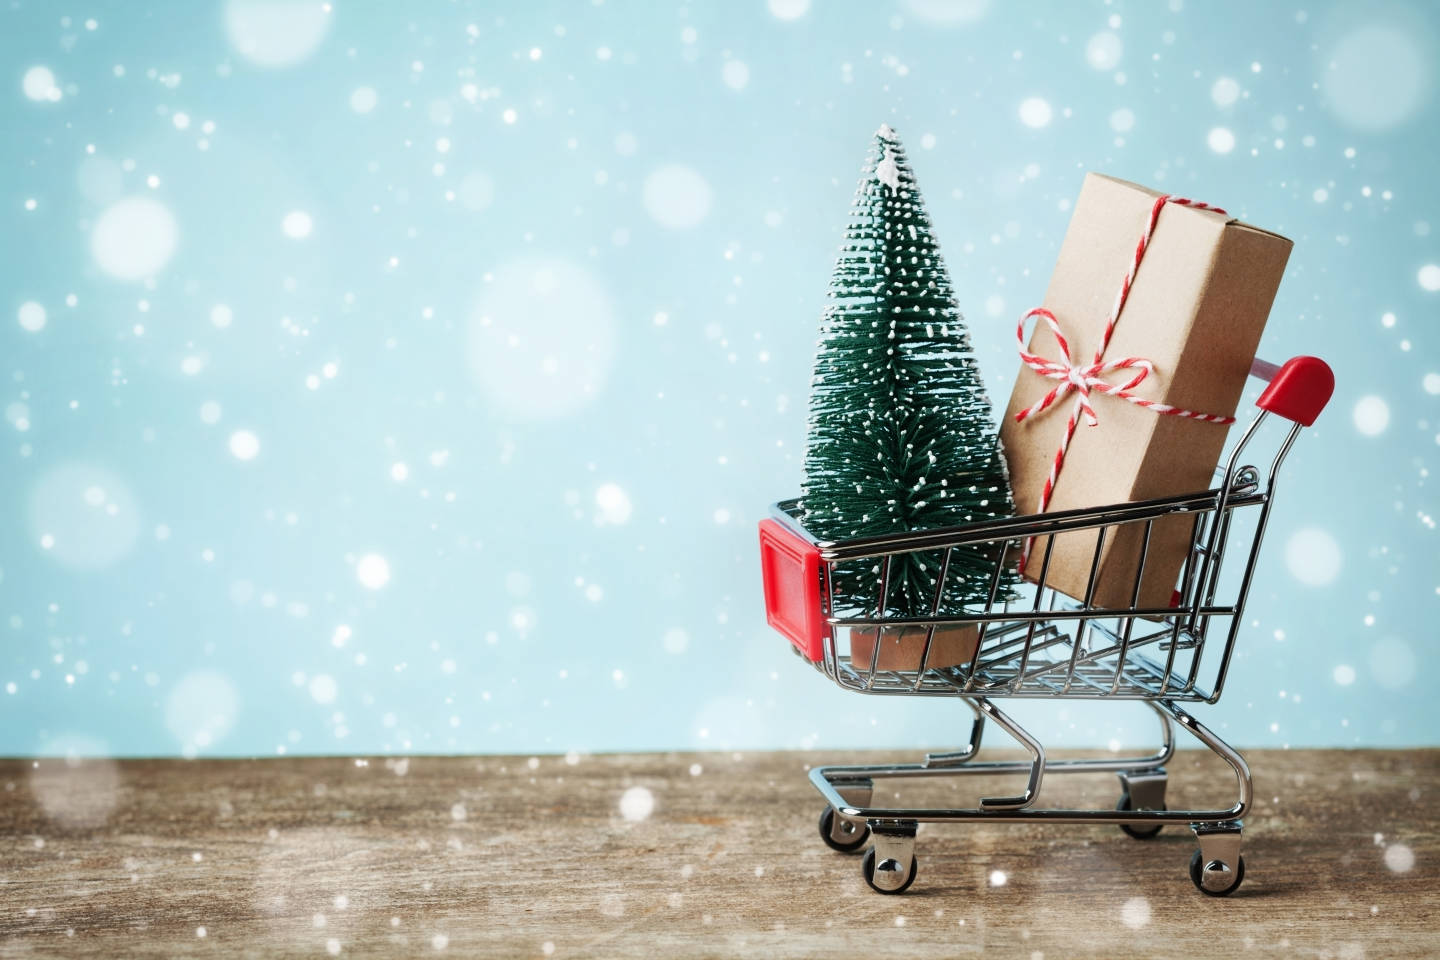 toy shopping cart with christmas tree and gift with snow falling around